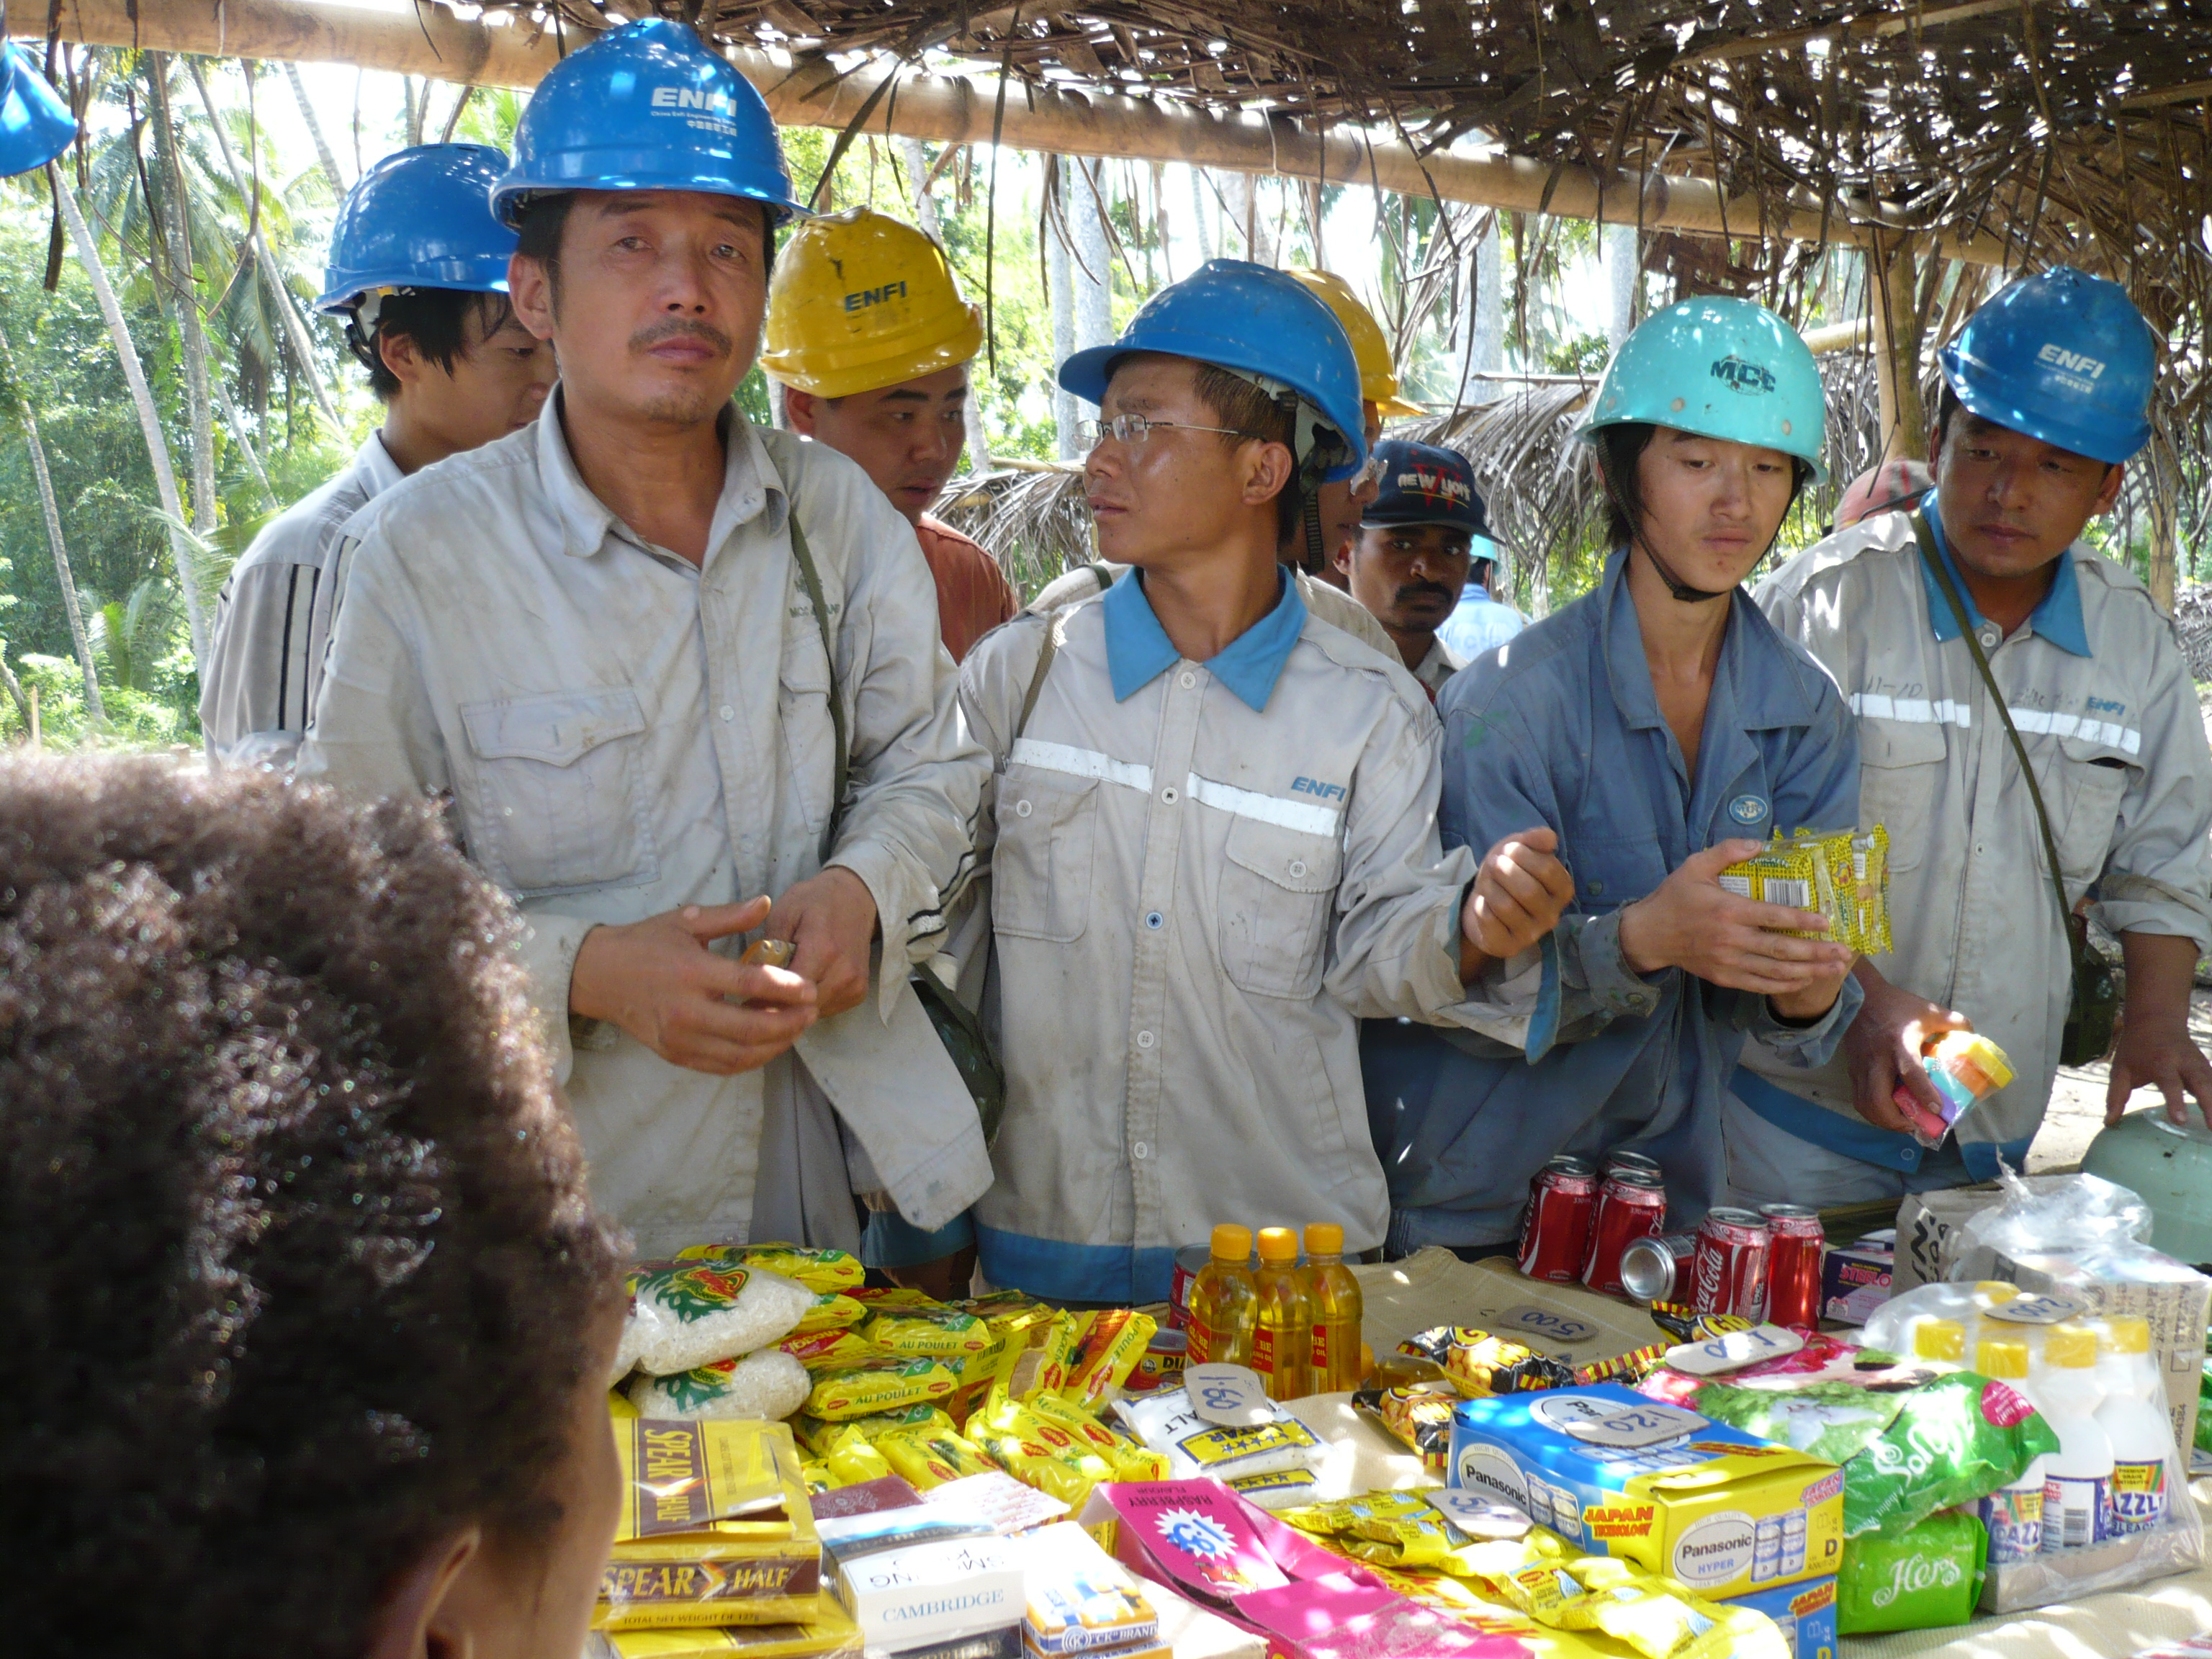 Mine workers, Basamuk refinery site, Papua New Guinea